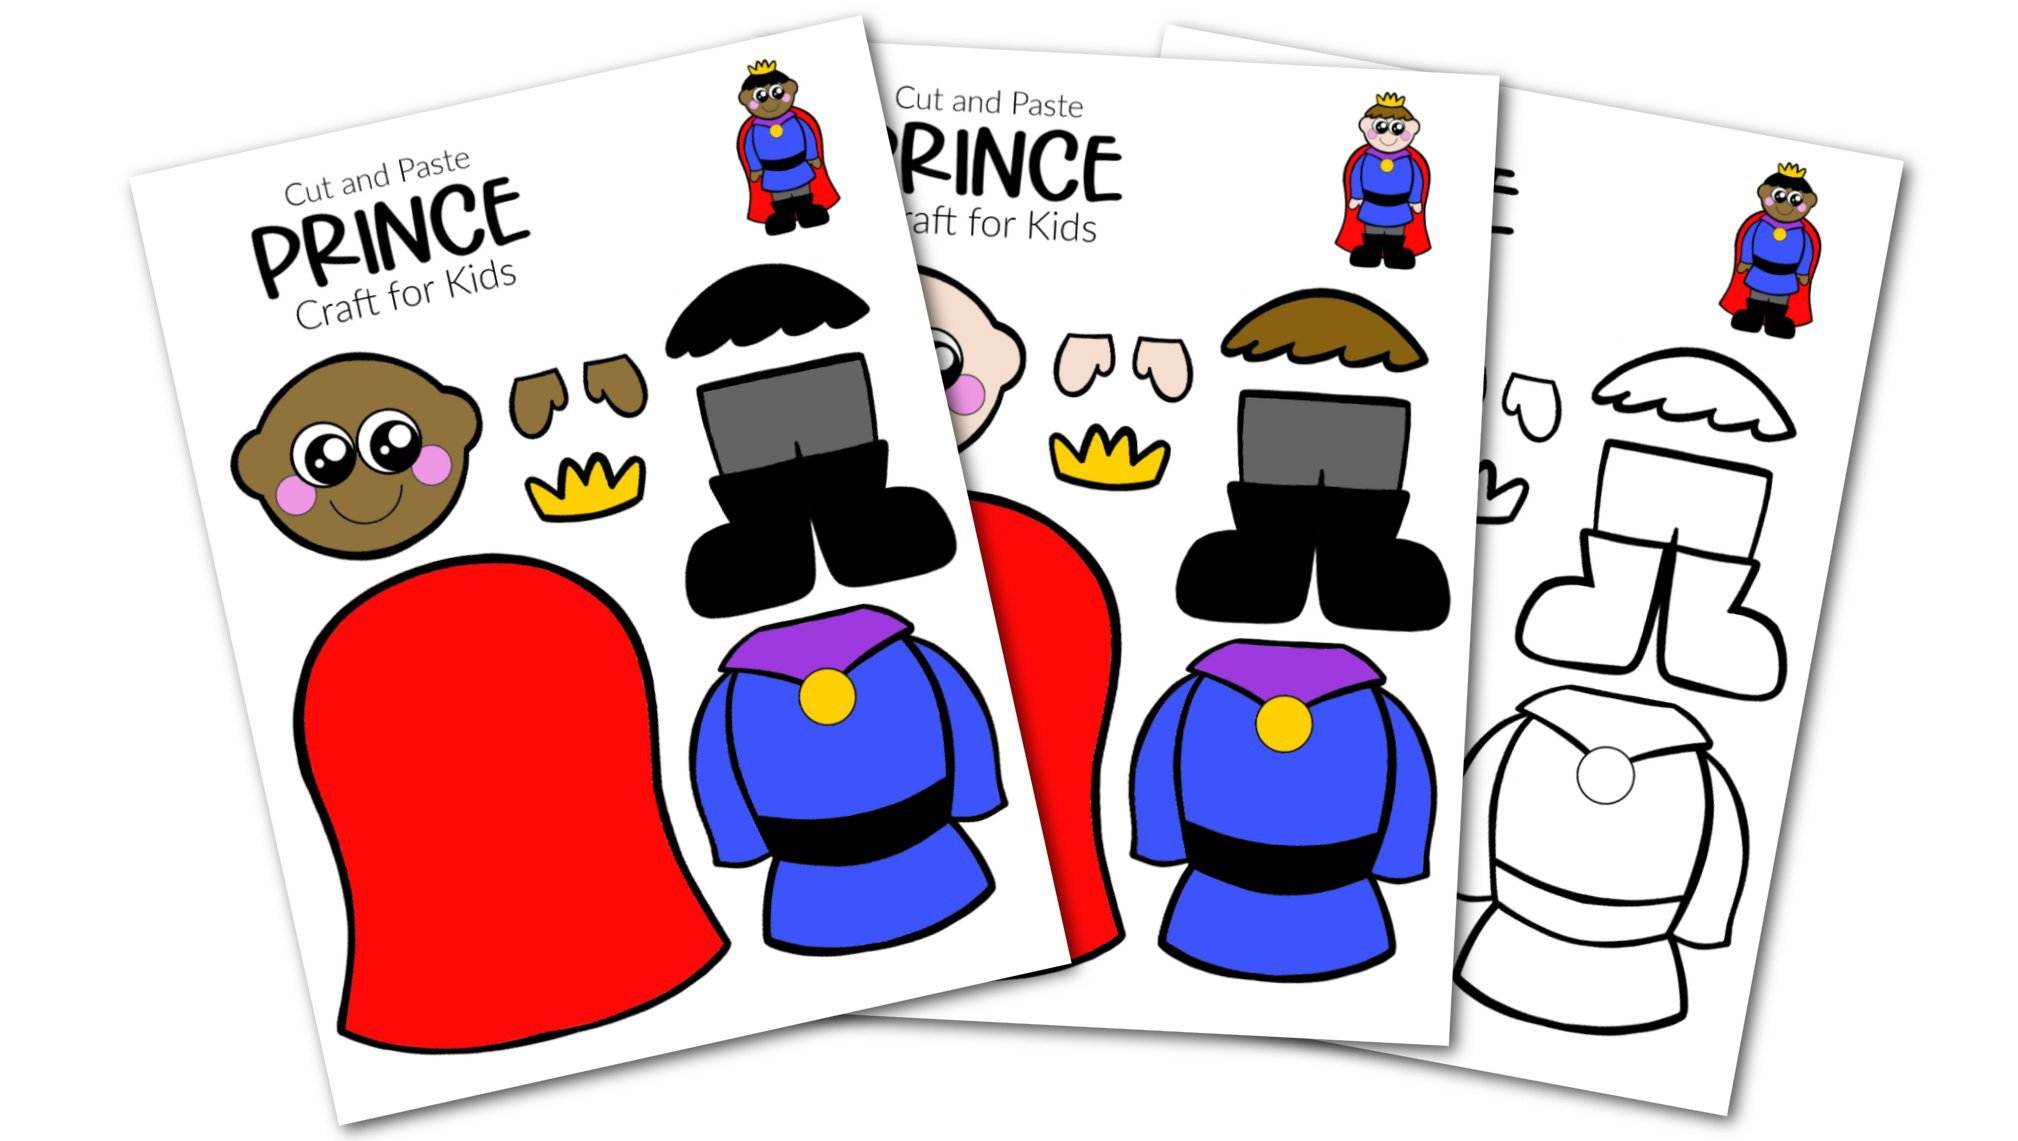 Free Printable Cut and Paste Prince Craft Template Craft for kids, preschoolers and toddlers